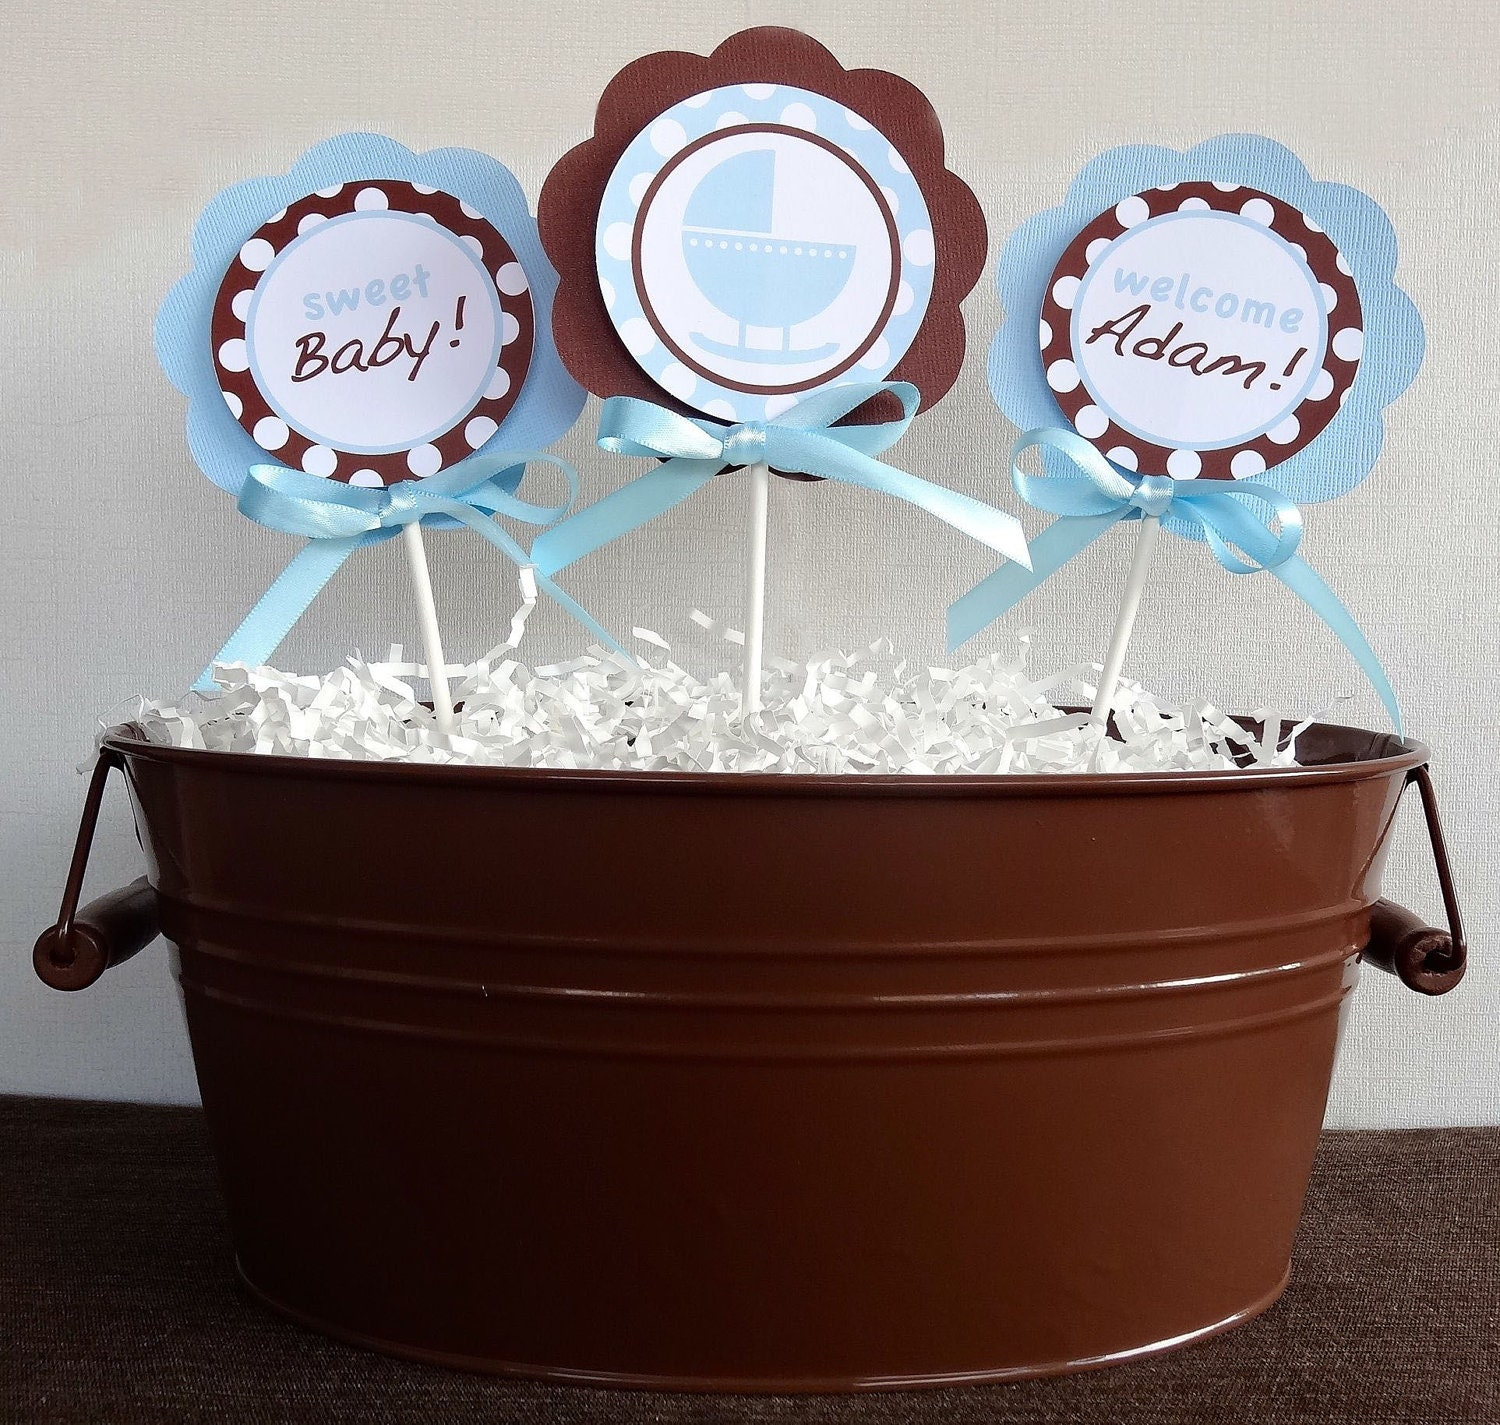 Baby Shower Decorations Table Settings: Blue And Brown Baby Shower Decorations